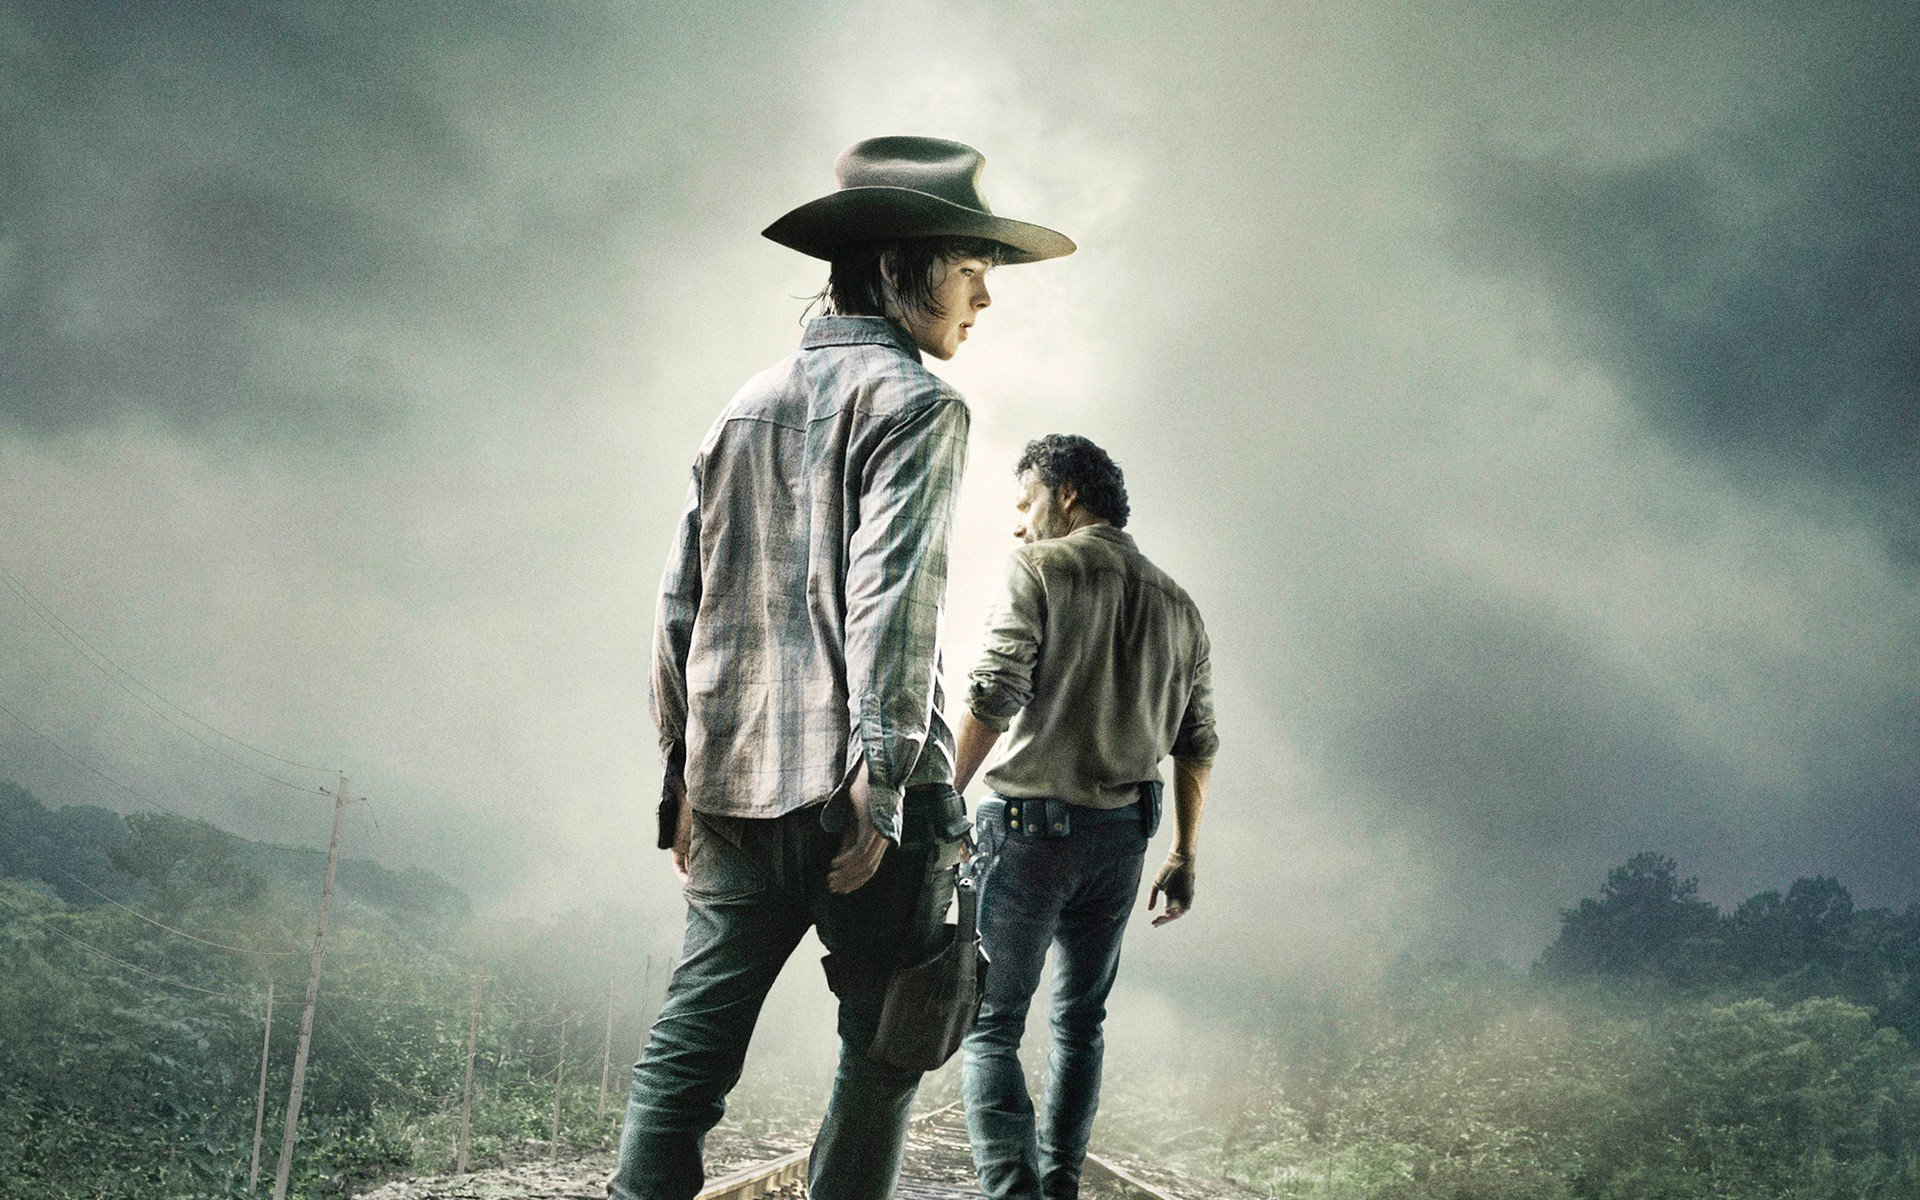 540x960 The Walking Dead Tv 540x960 Resolution Hd 4k Wallpapers